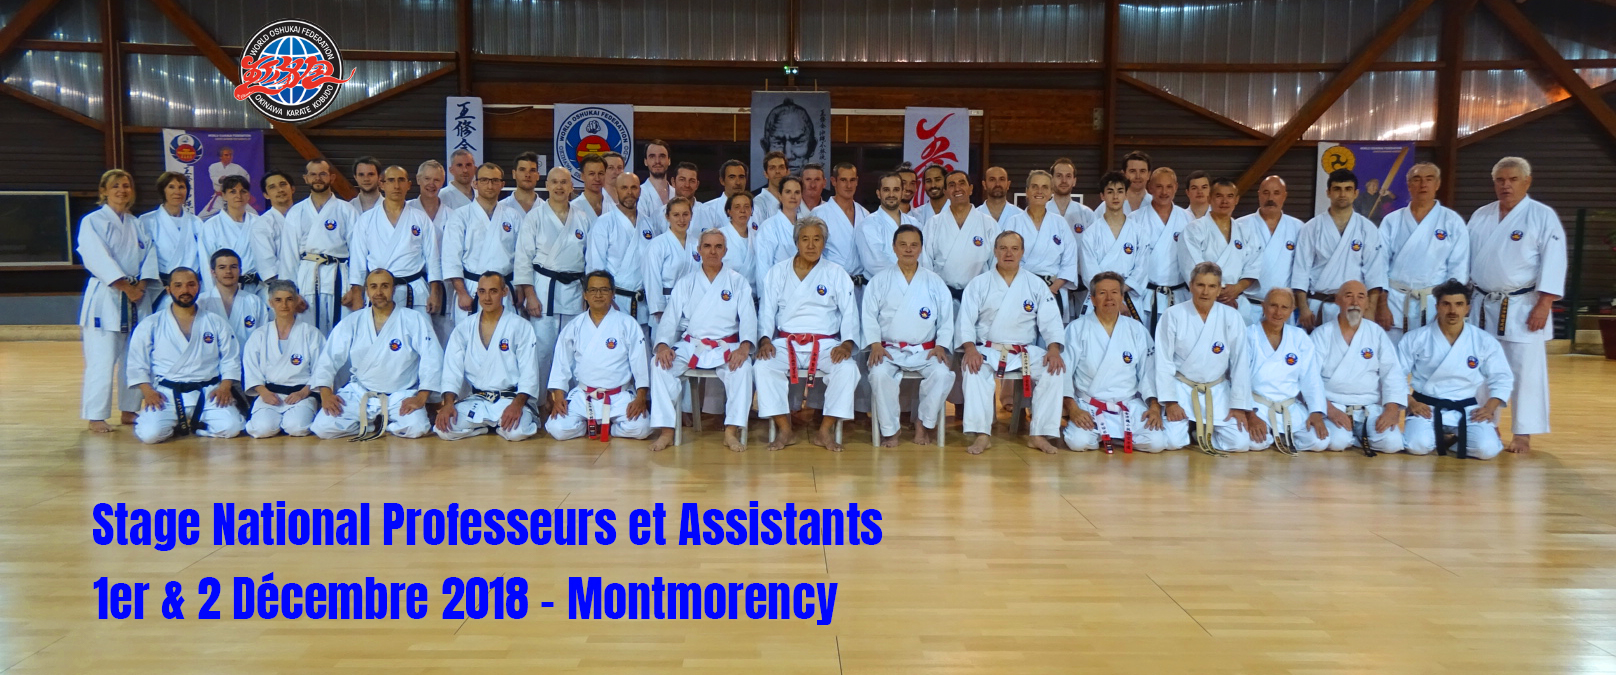 Stage National Oshukai Professeurs et Assistants – Montmorency